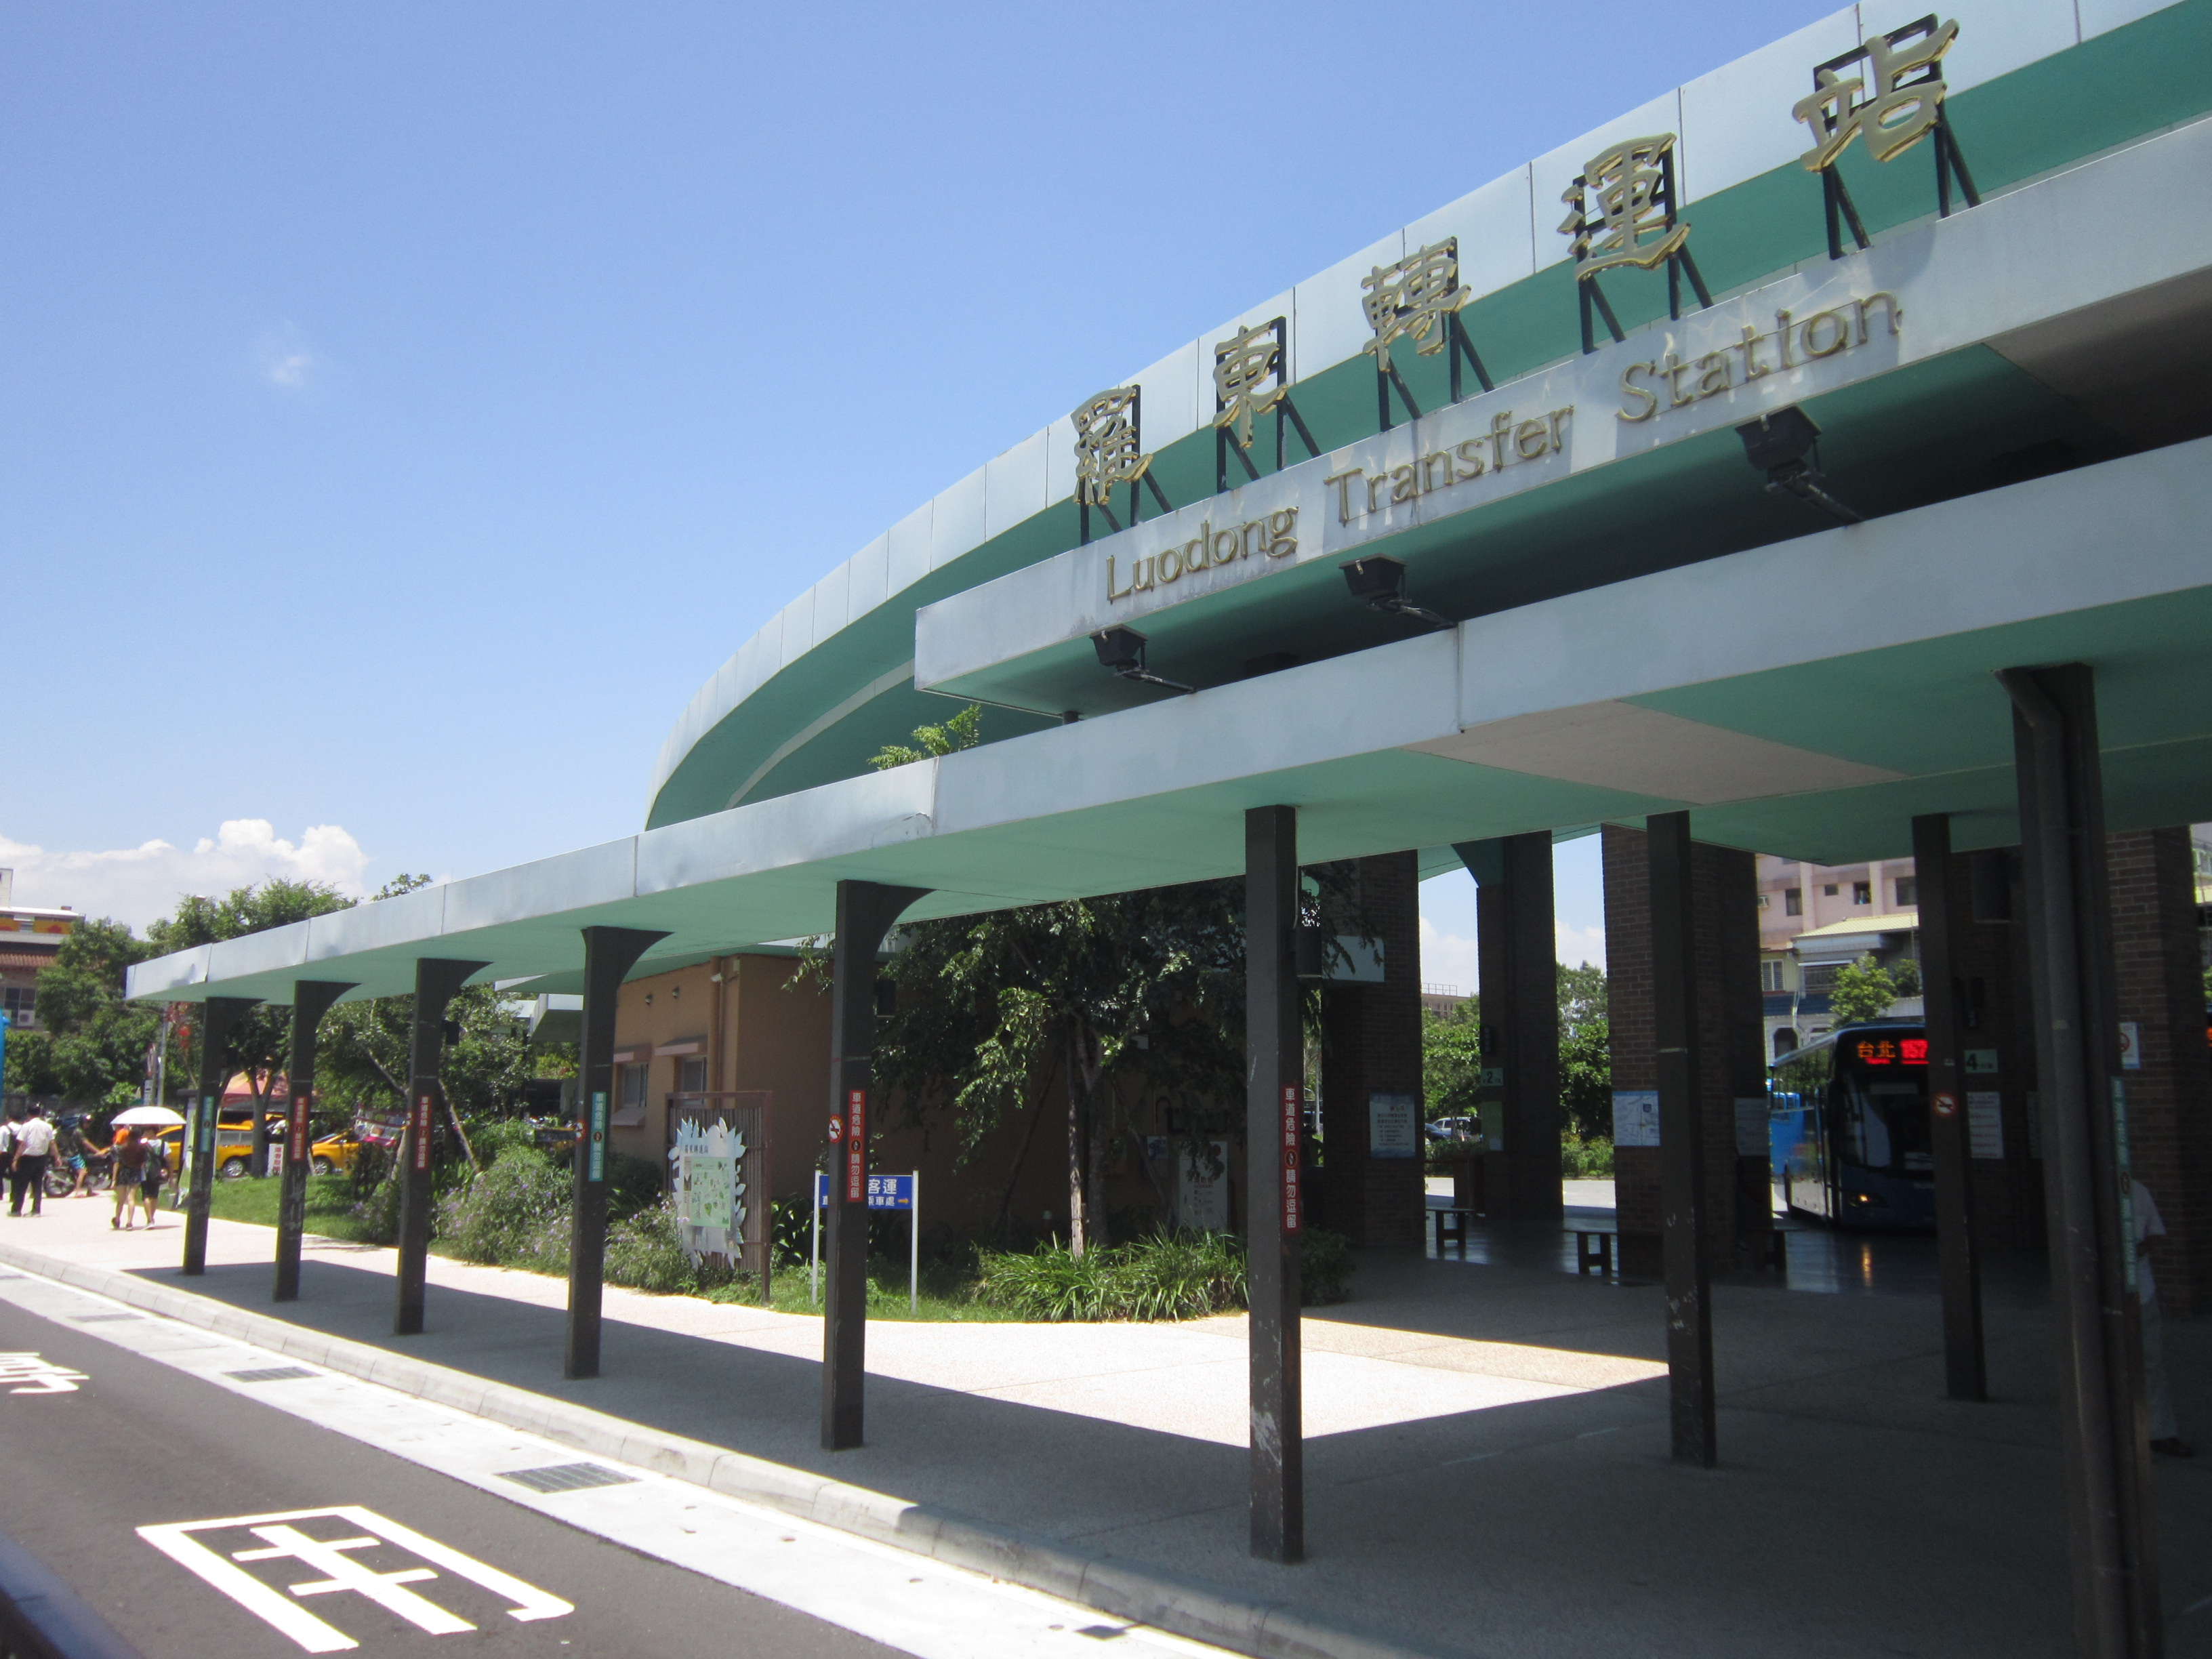 Luo dong Transfer Station 3.jpg